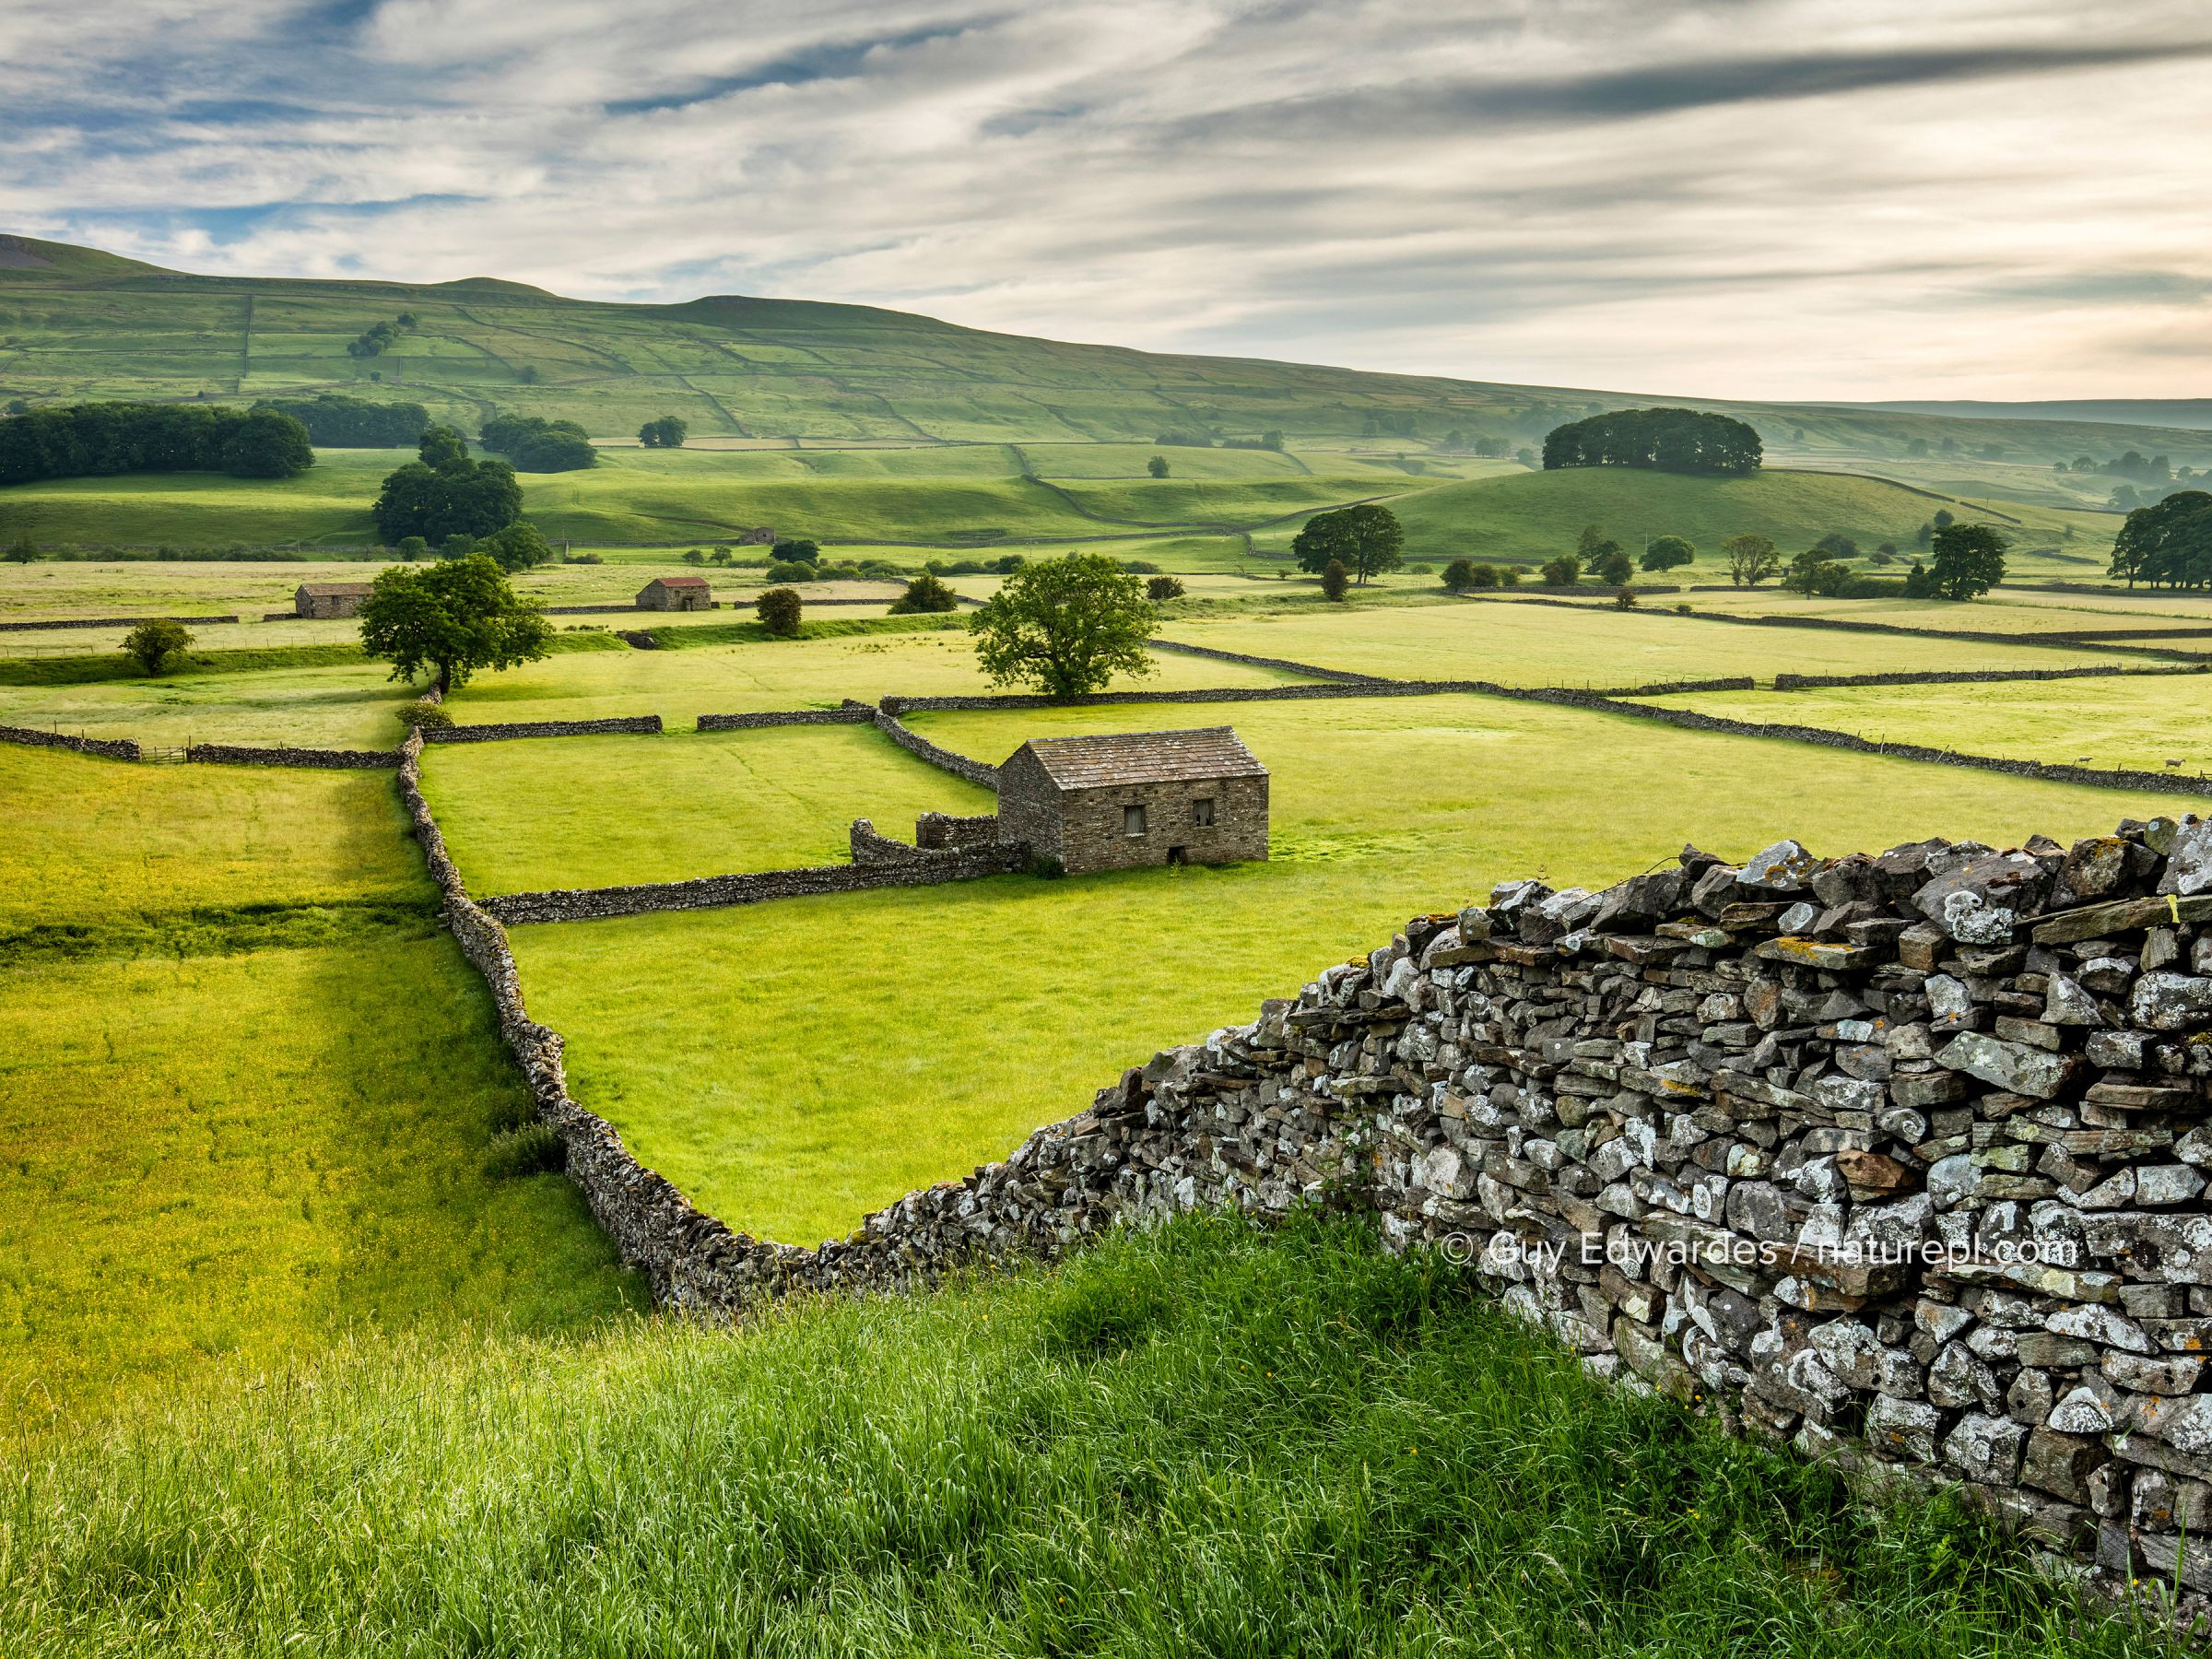 Dry-stone walls and barns in Wensleydale, Yorkshire Dales National Park, North Yorkshire, England, UK, June 2016.